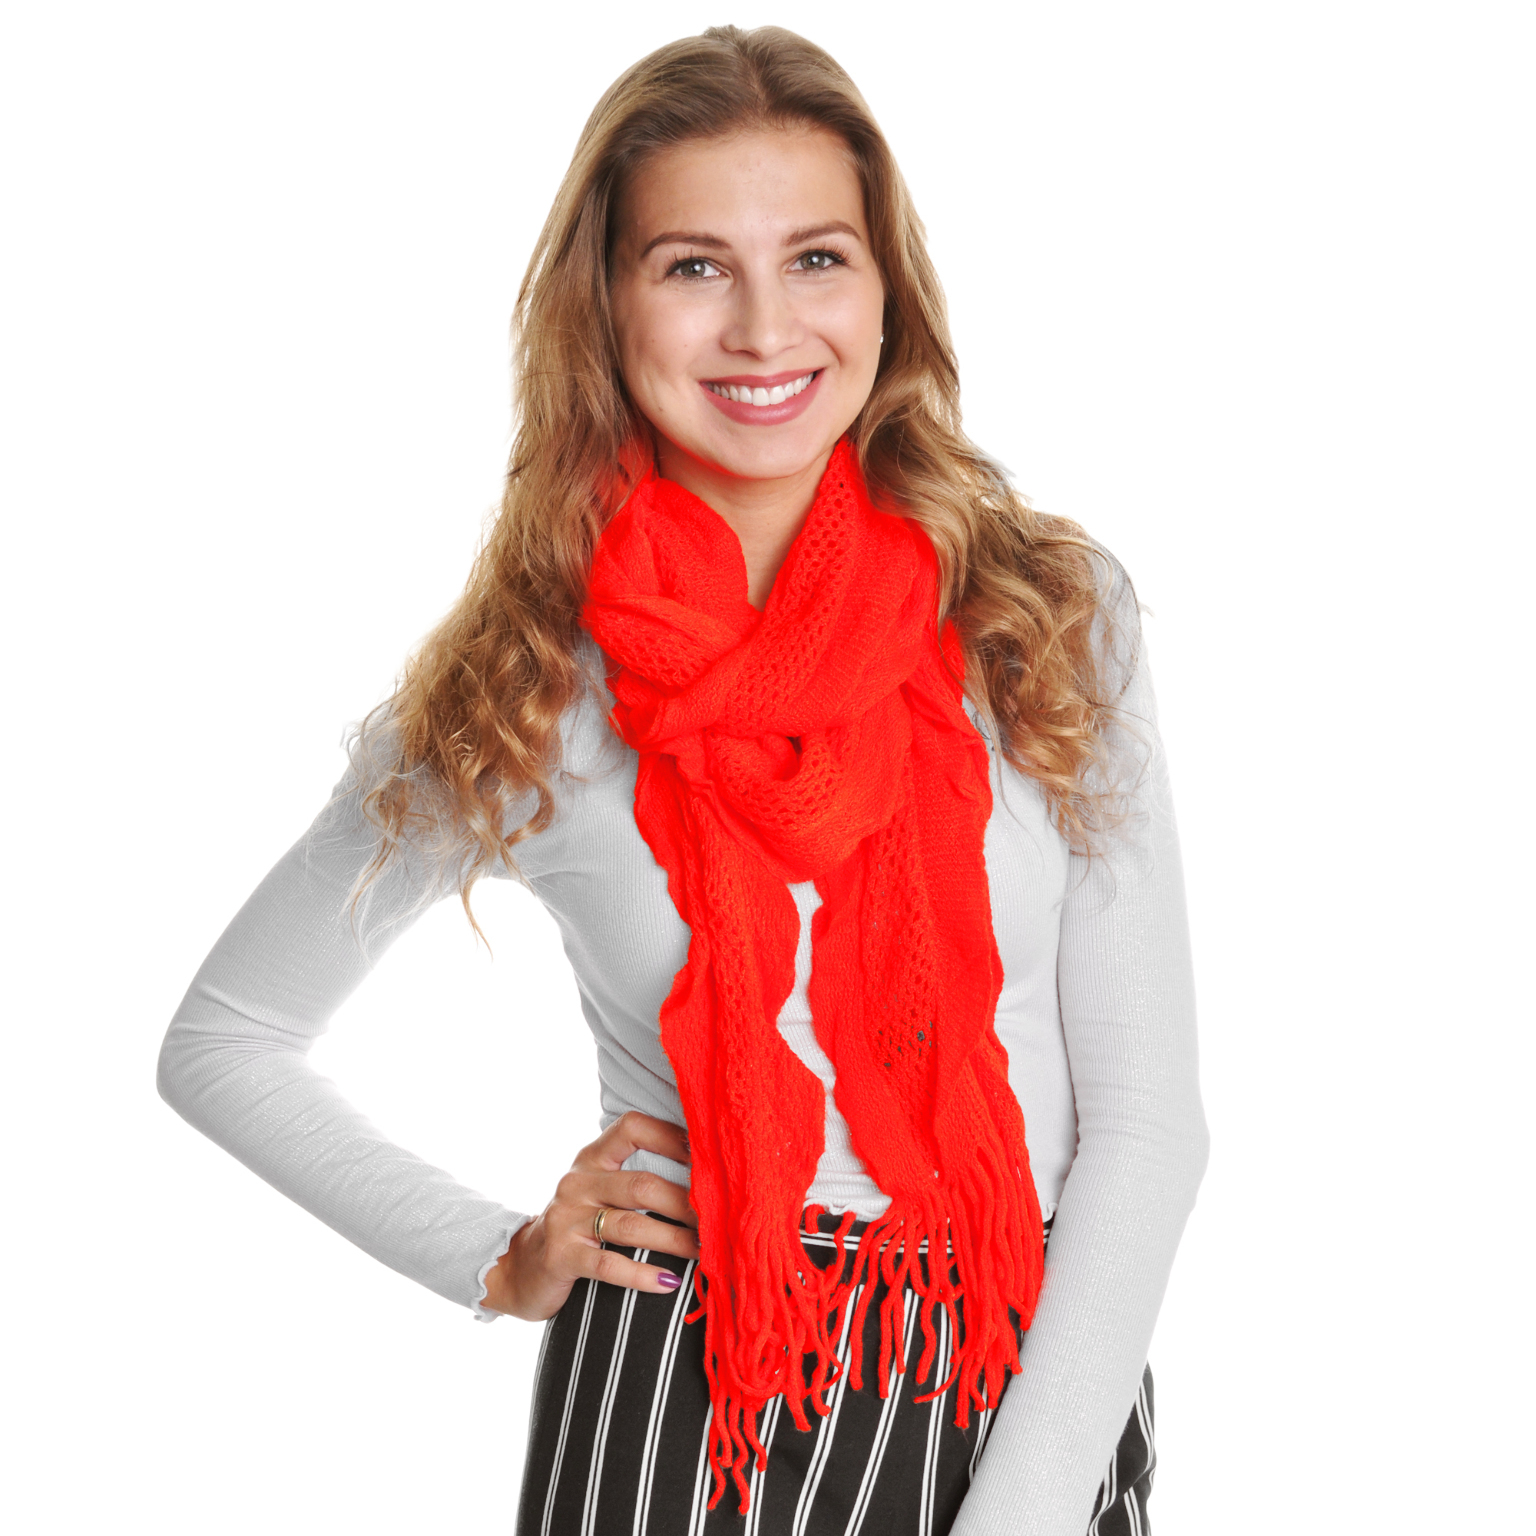 Case of [48] Angelina Knit Ruffled Knit Fringe Scarves - Assorted Solid Colors